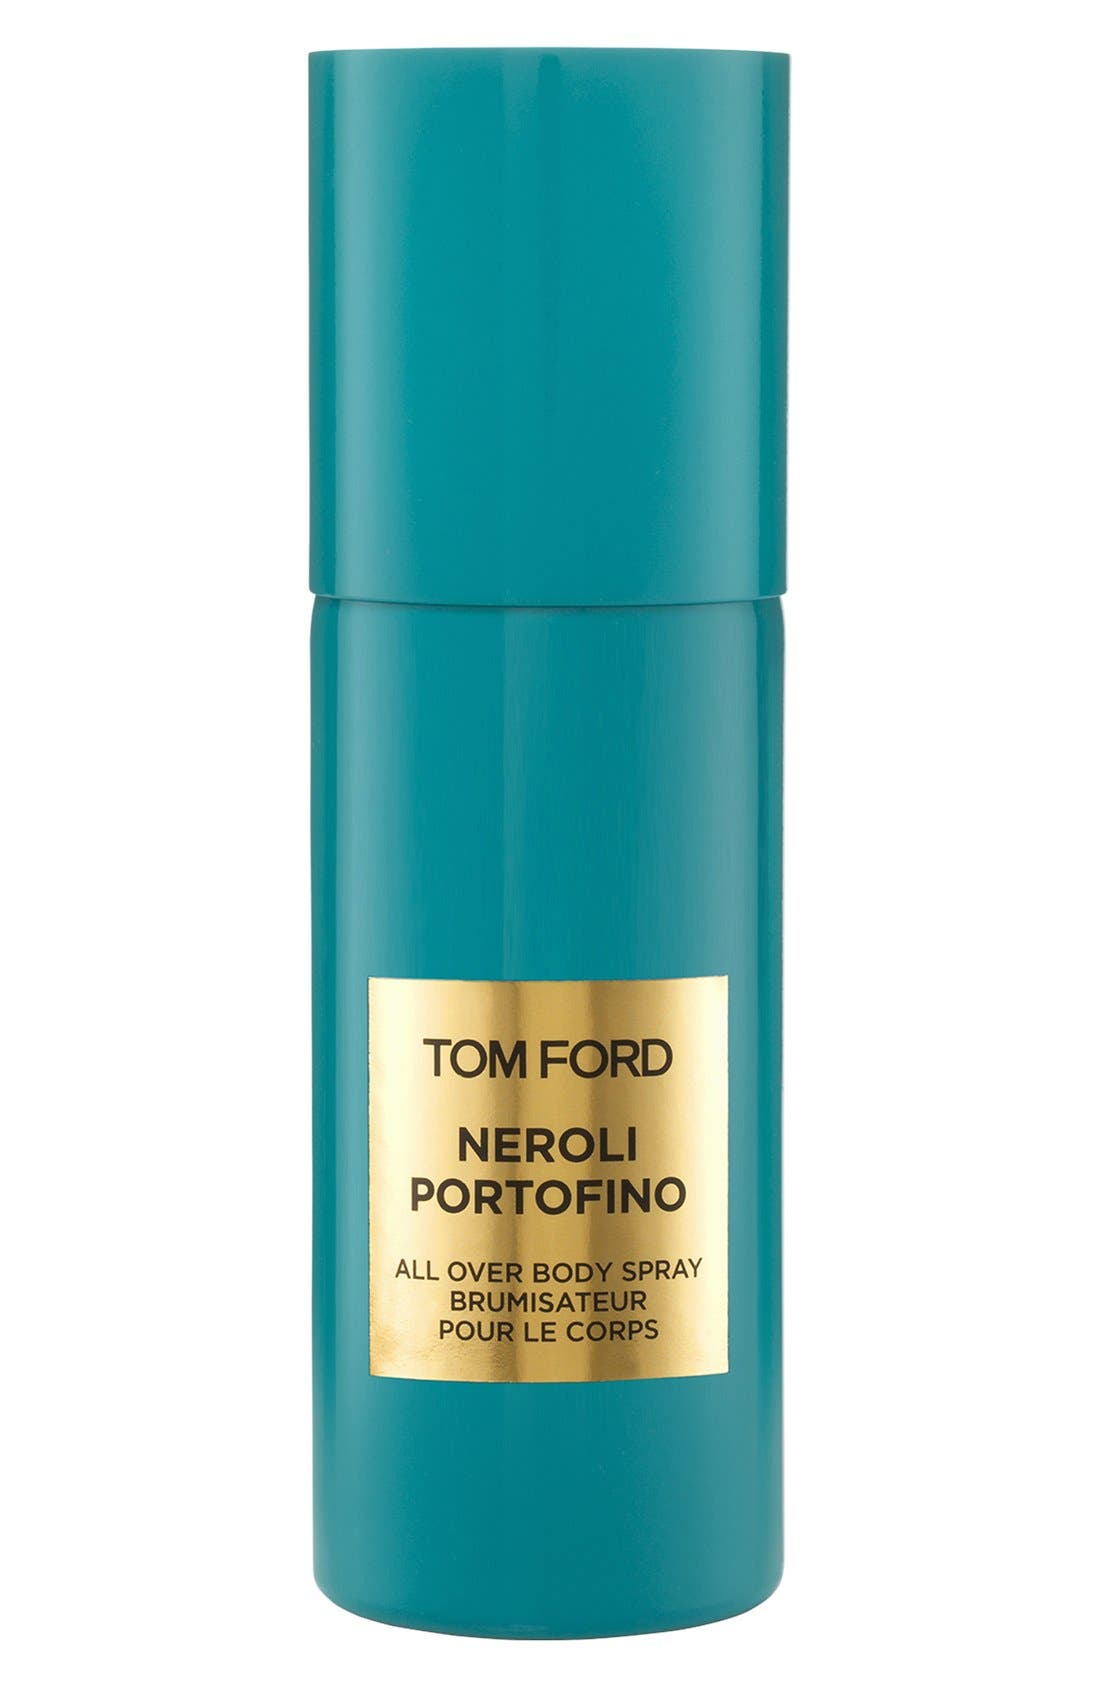 Tom Ford Private Blend 'Neroli Portofino' All Over Body Spray